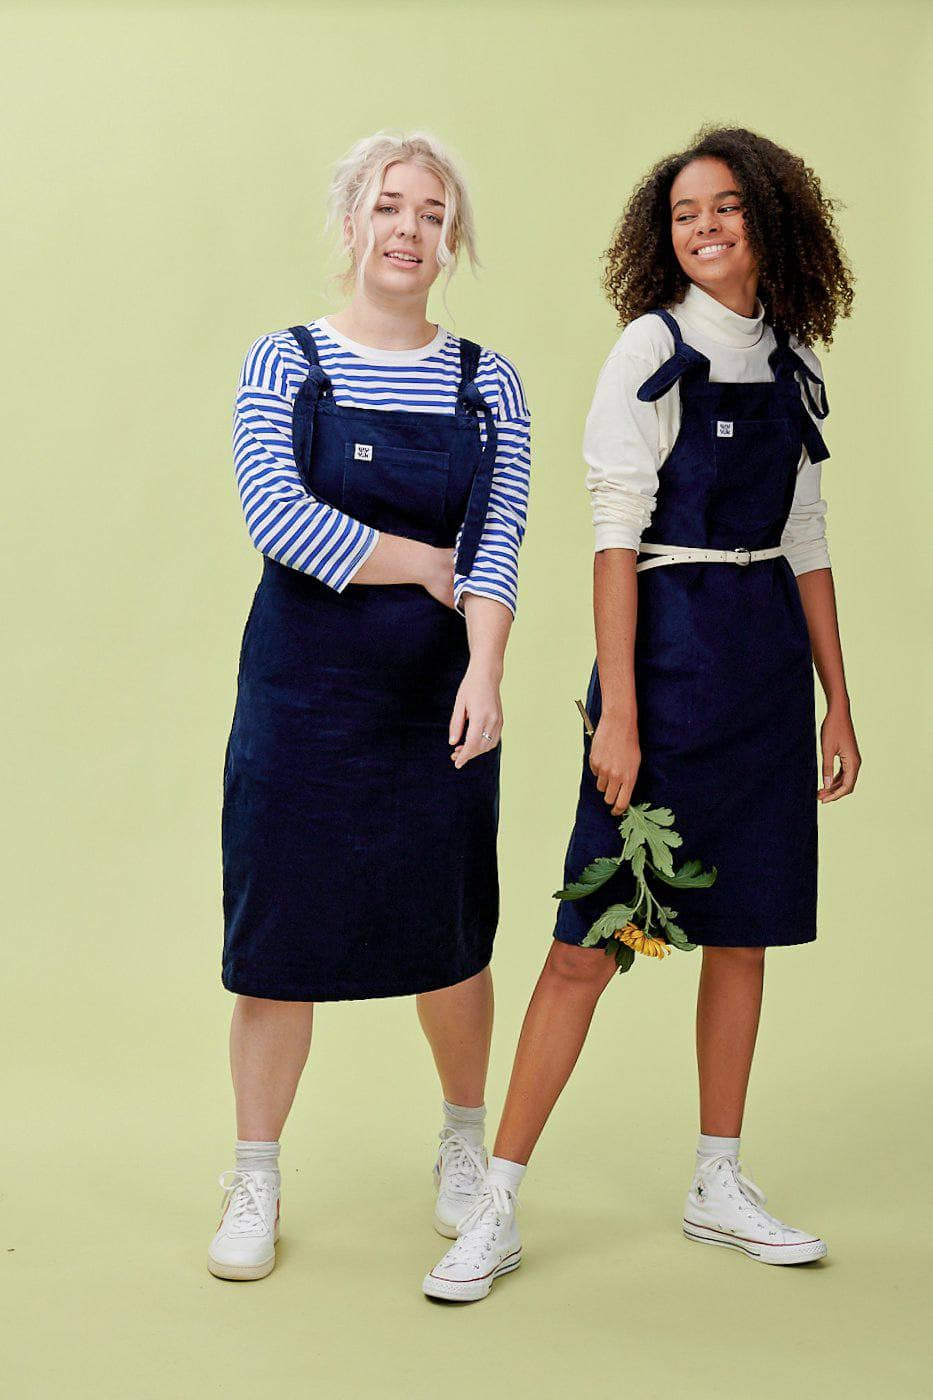 Lucy & Yak Dress 'Freyja' Corduroy Midi Dungaree Dress in Sailor Blue